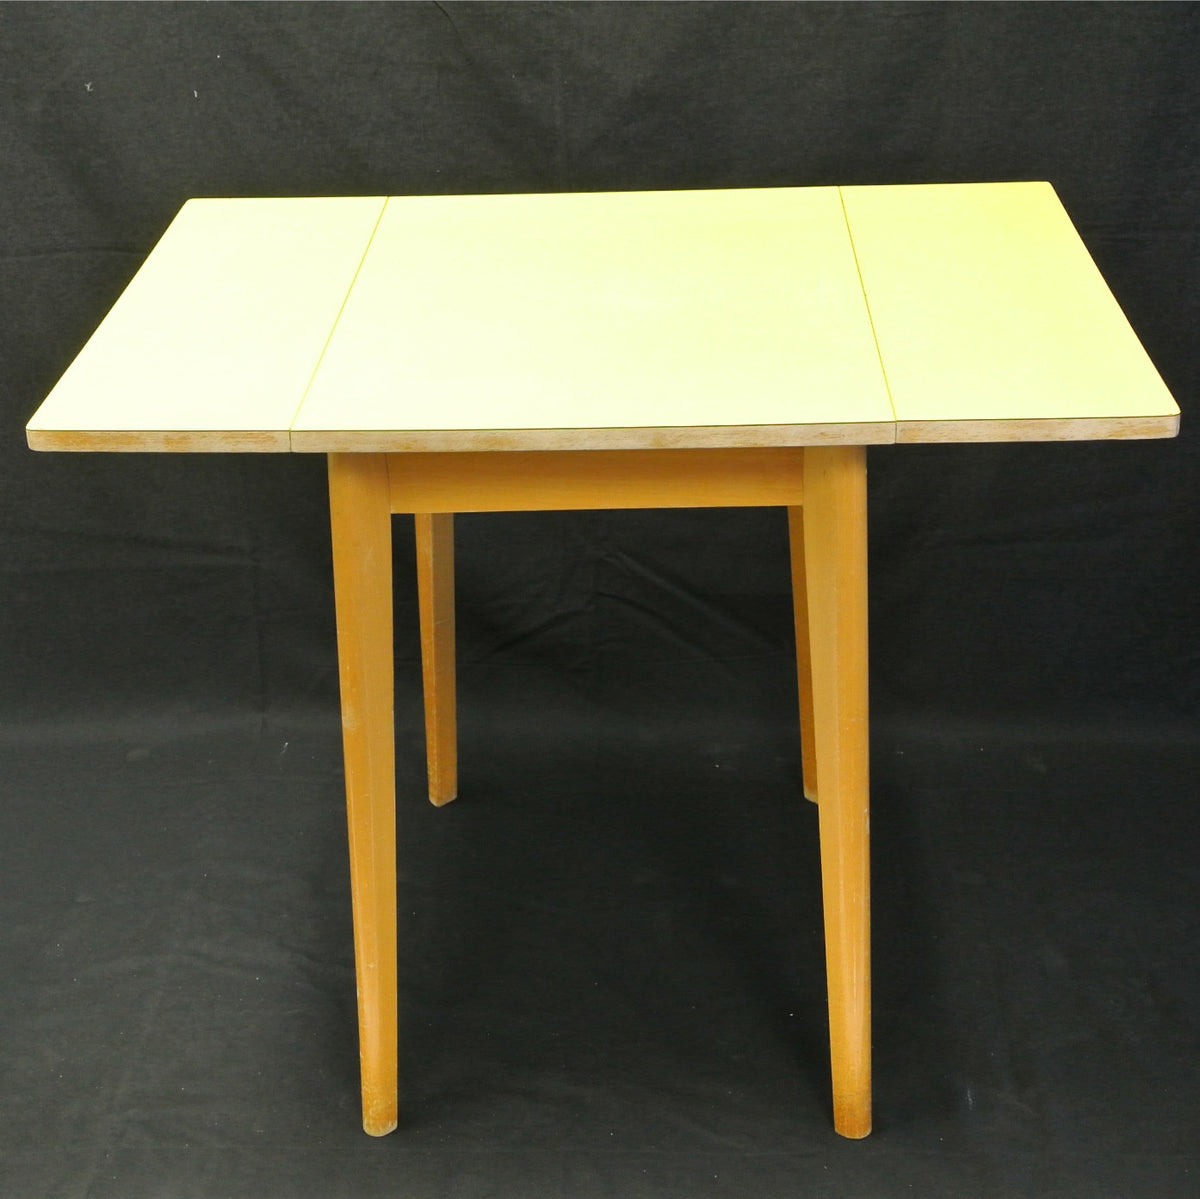 Vintage 1950's yellow formica folding table